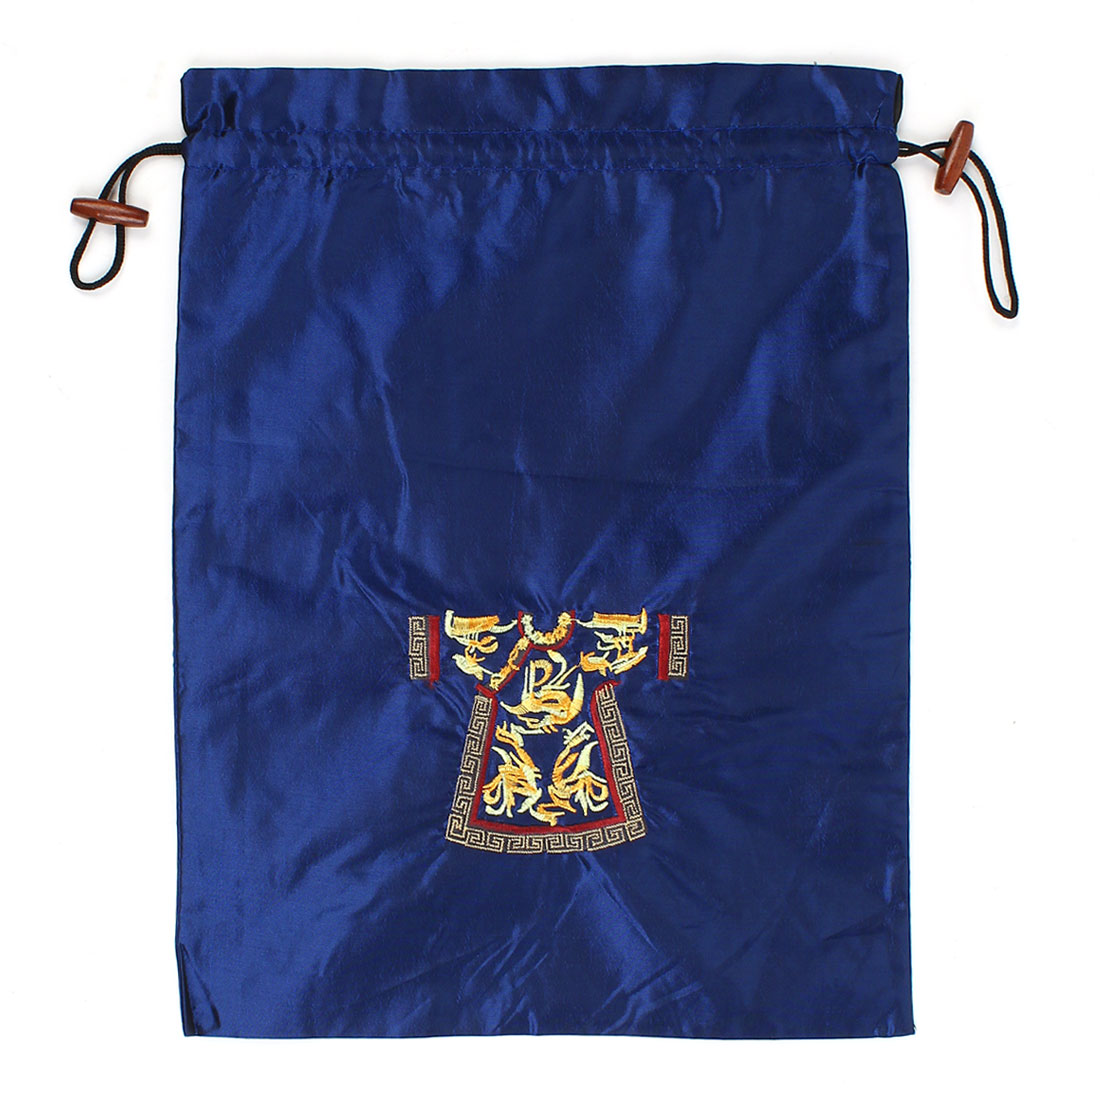 Rectangle Shape Embroidery Cloth Pattern Drawstring Gift Pouch Bag Dark Blue